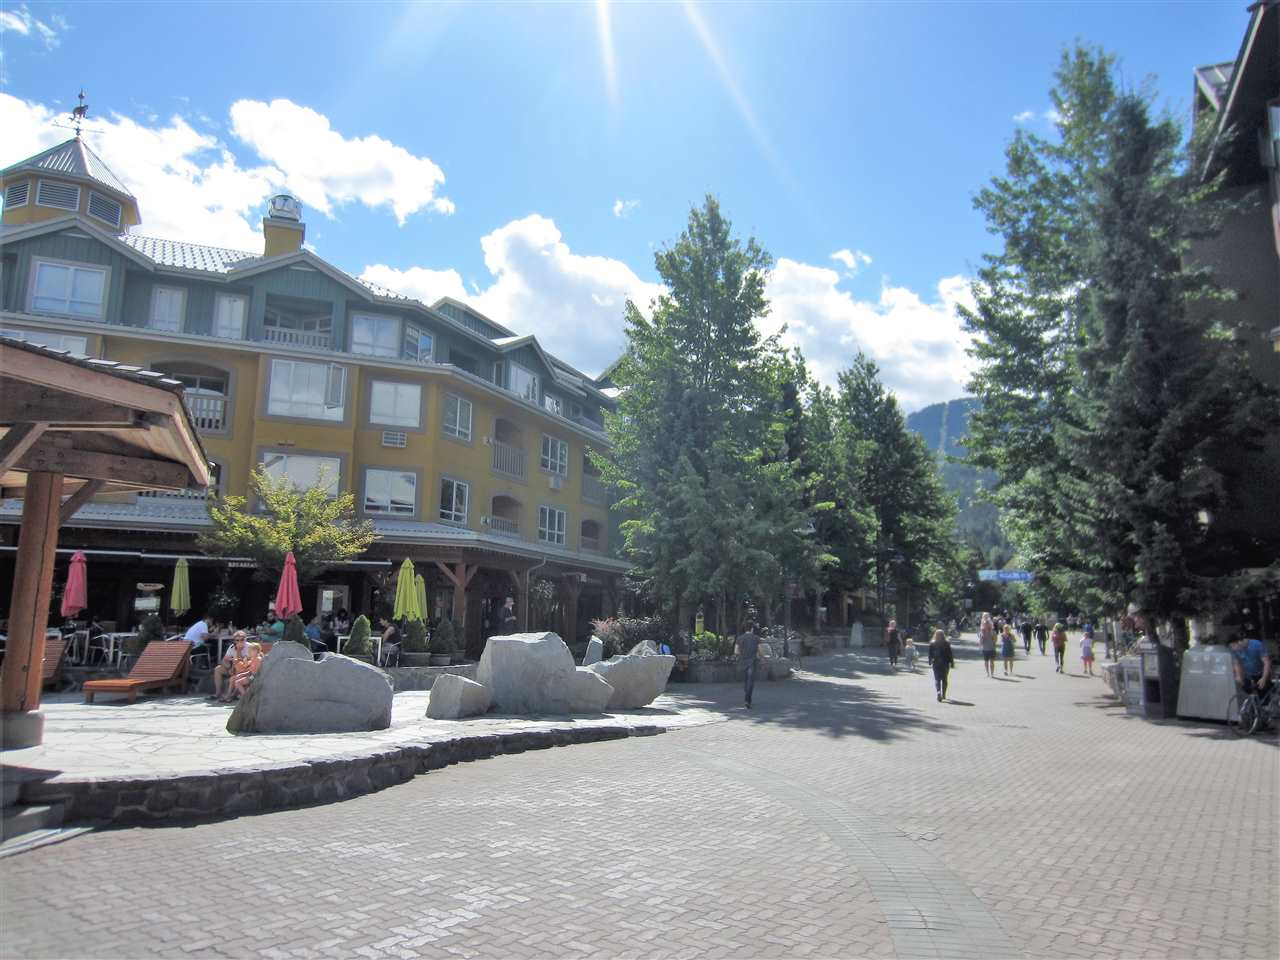 Condo Apartment at 310 4314 MAIN STREET, Unit 310, Whistler, British Columbia. Image 2